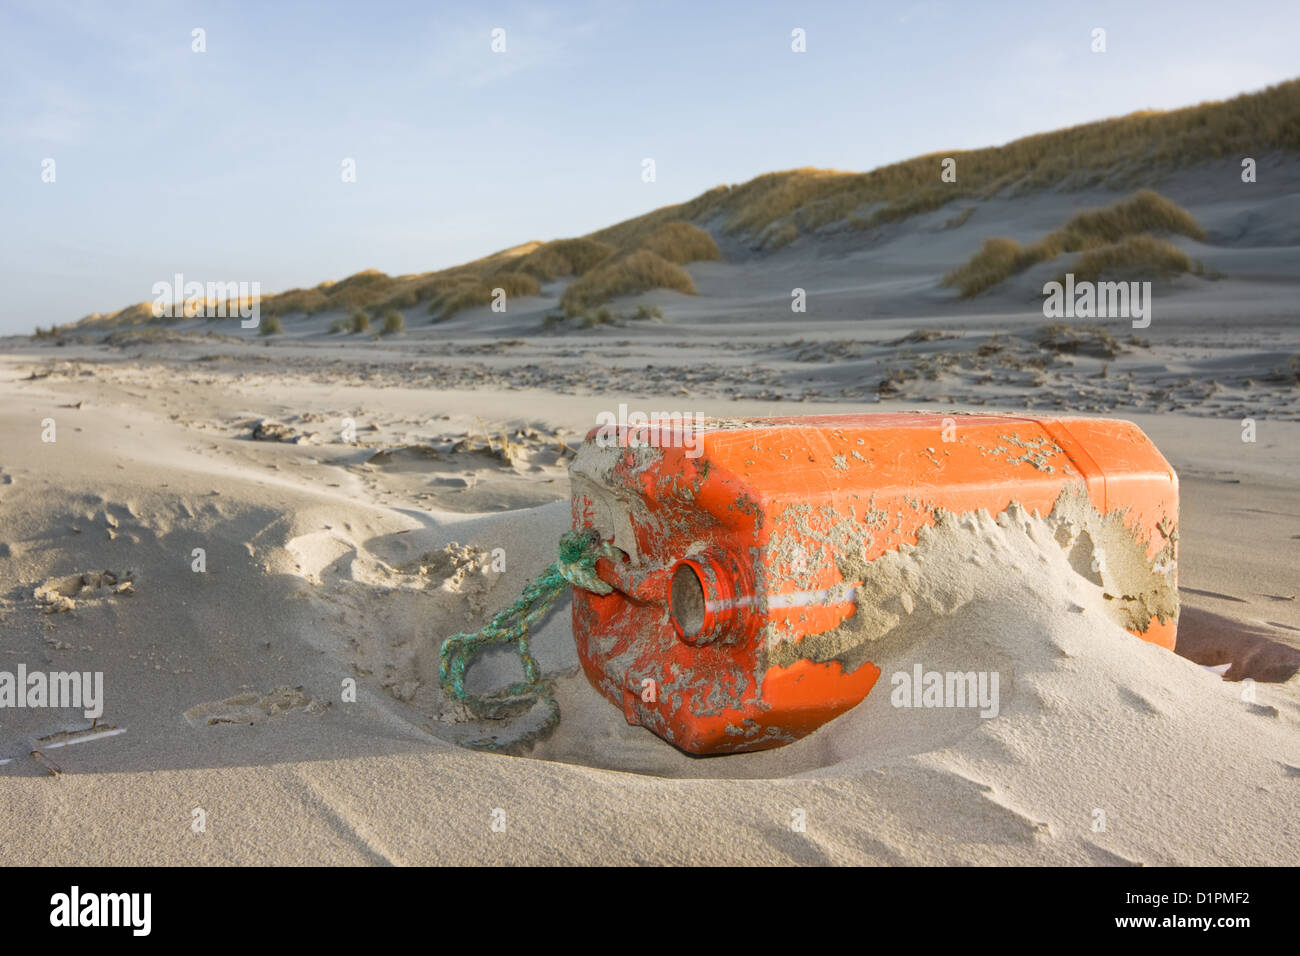 Plastic garbage, washed ashore on a beach. - Stock Image